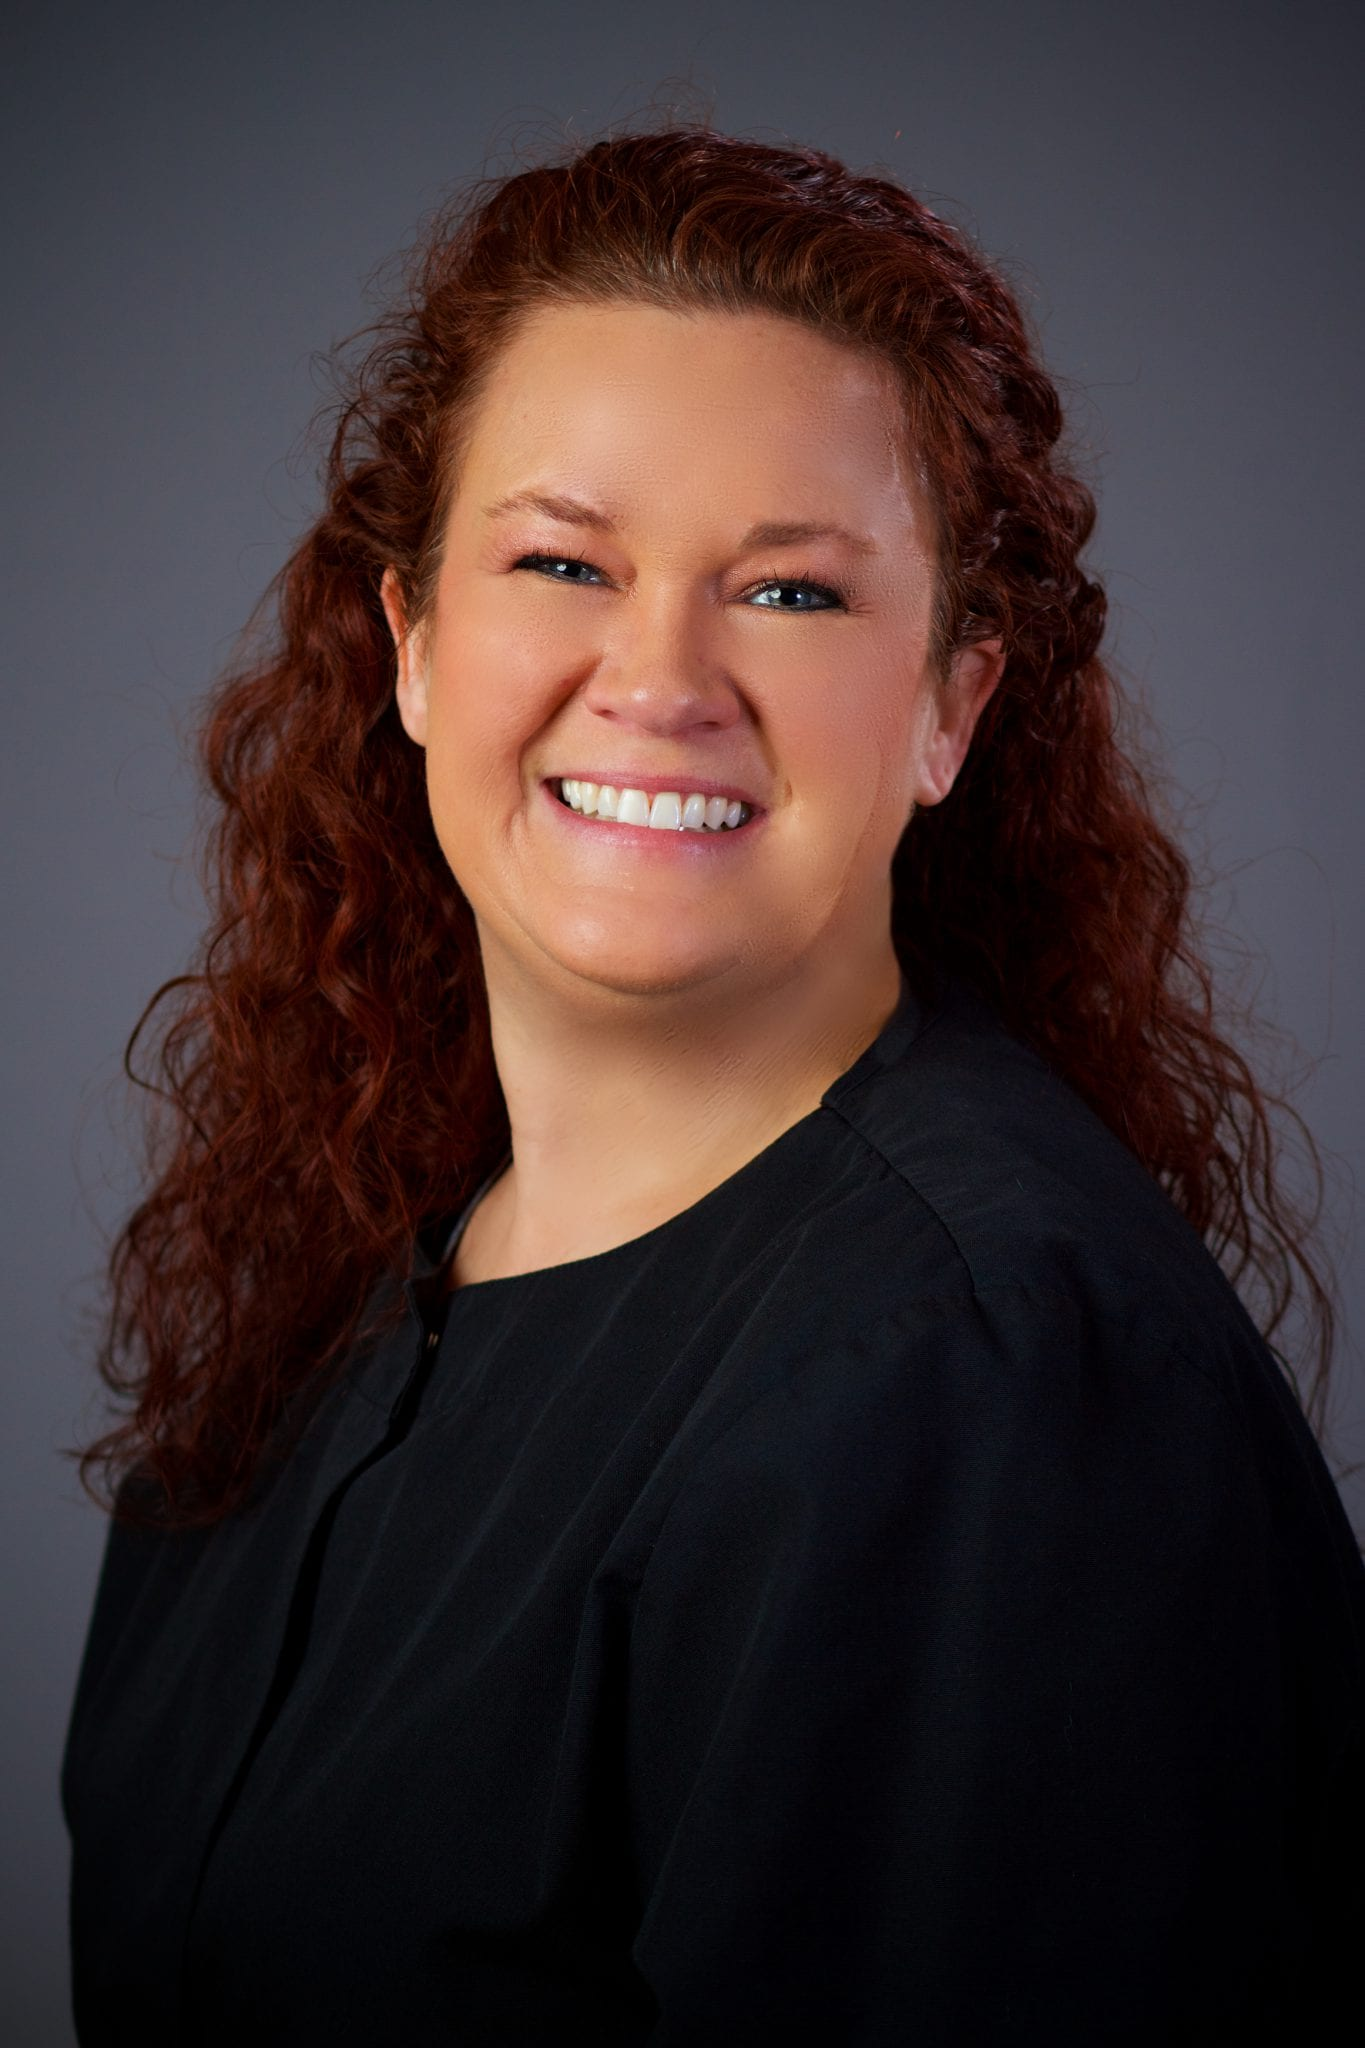 Kay who is a Dental Assistant at Birdwell and Guffey Family Dentistry in South Knoxville